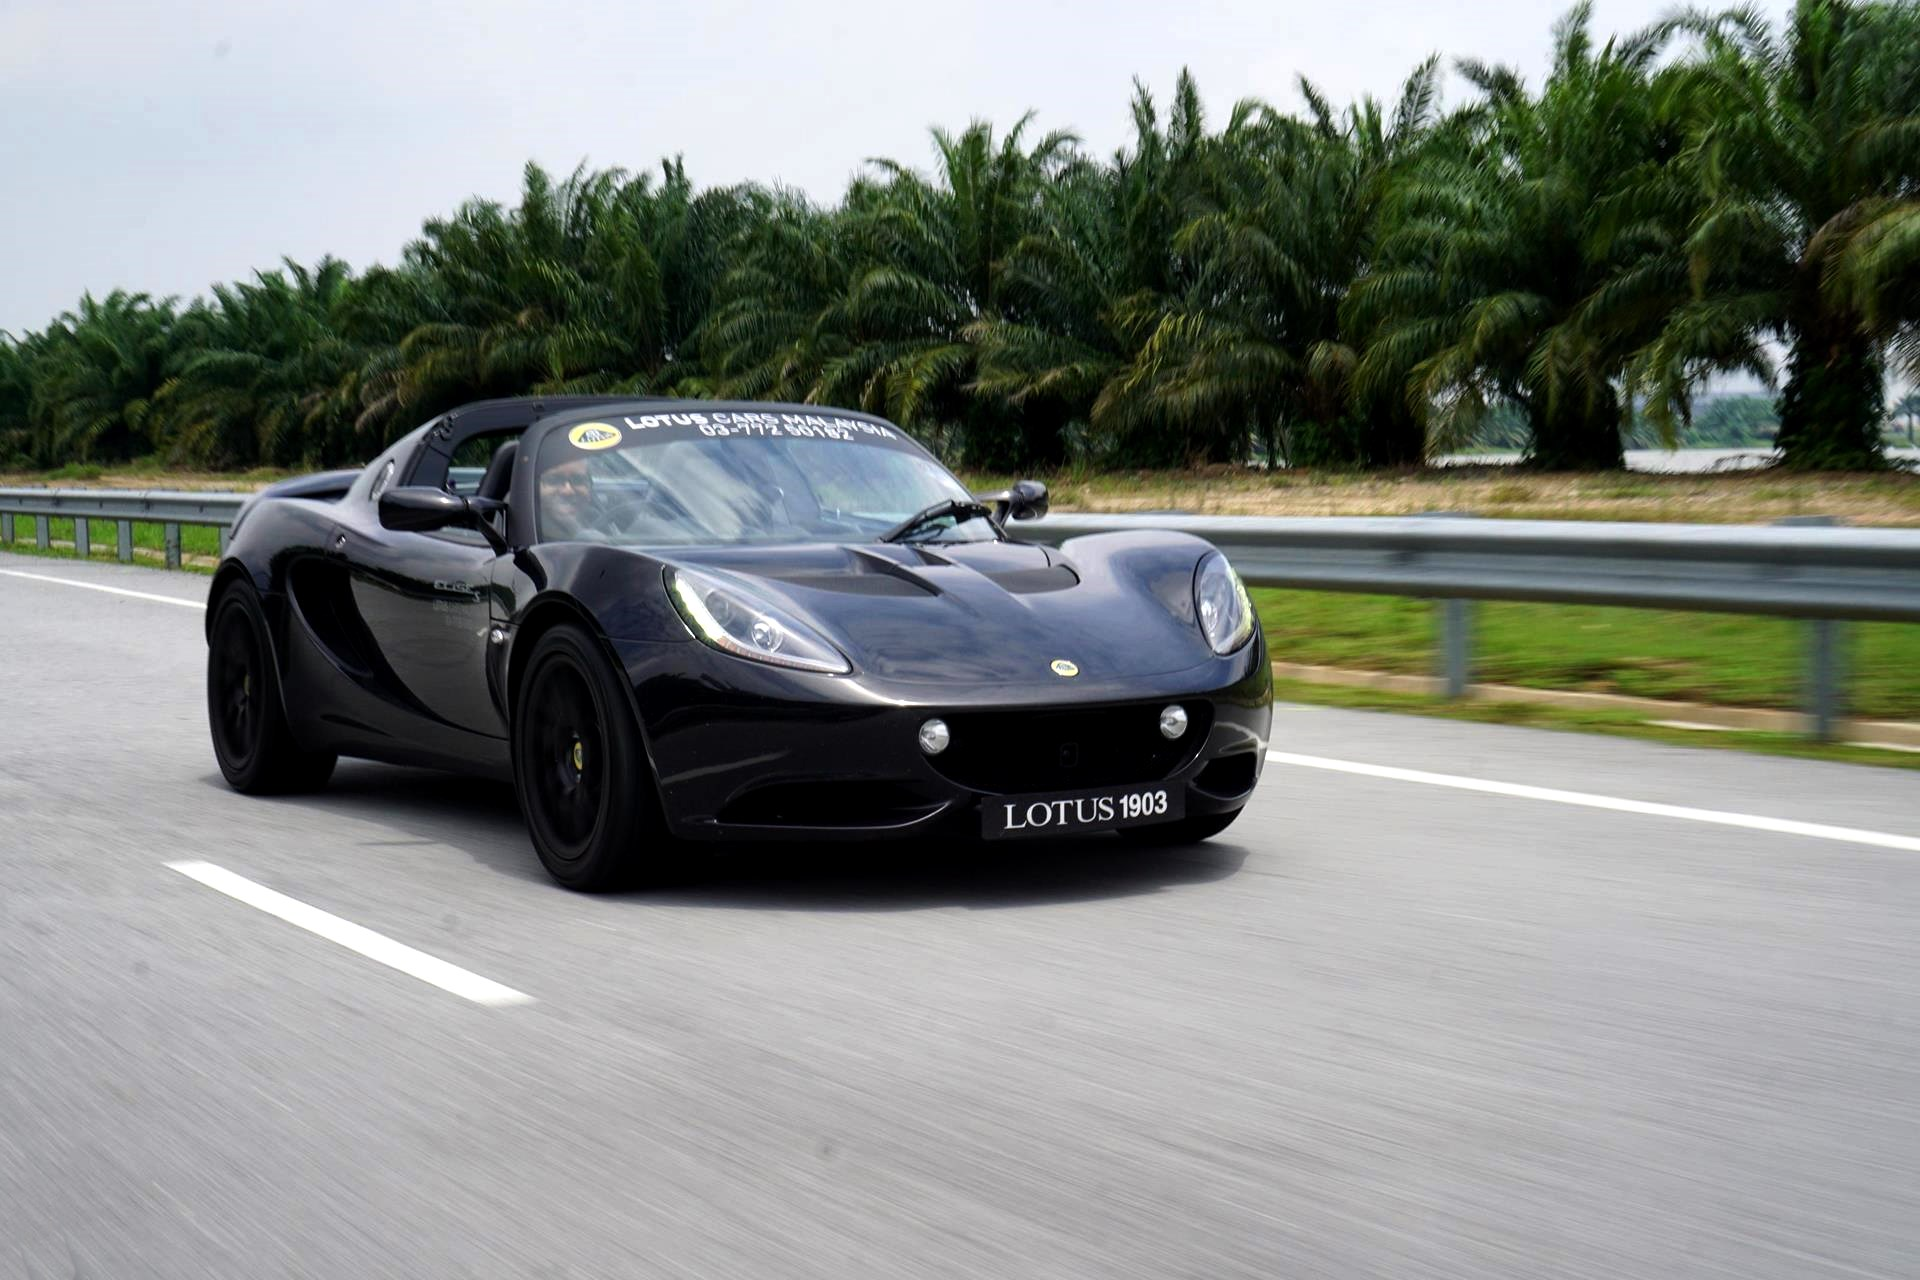 lotus to hire 200 new engineers on geely s dime